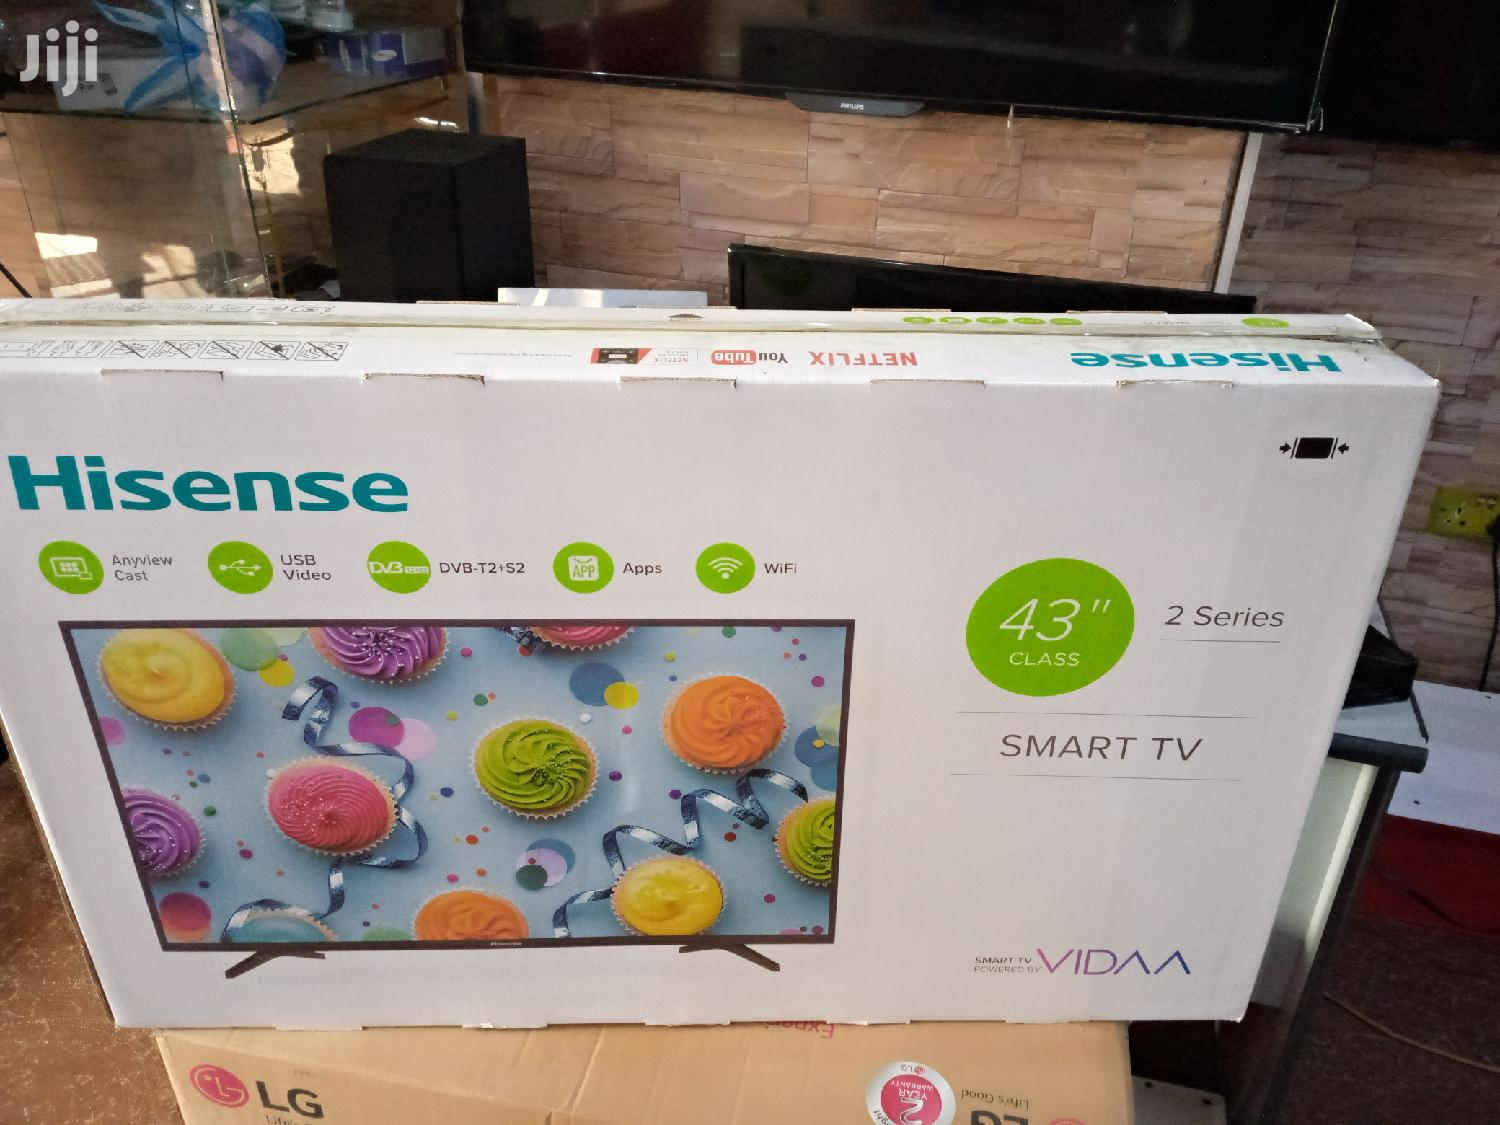 Brand New Hisense Smart TV 43 Inches